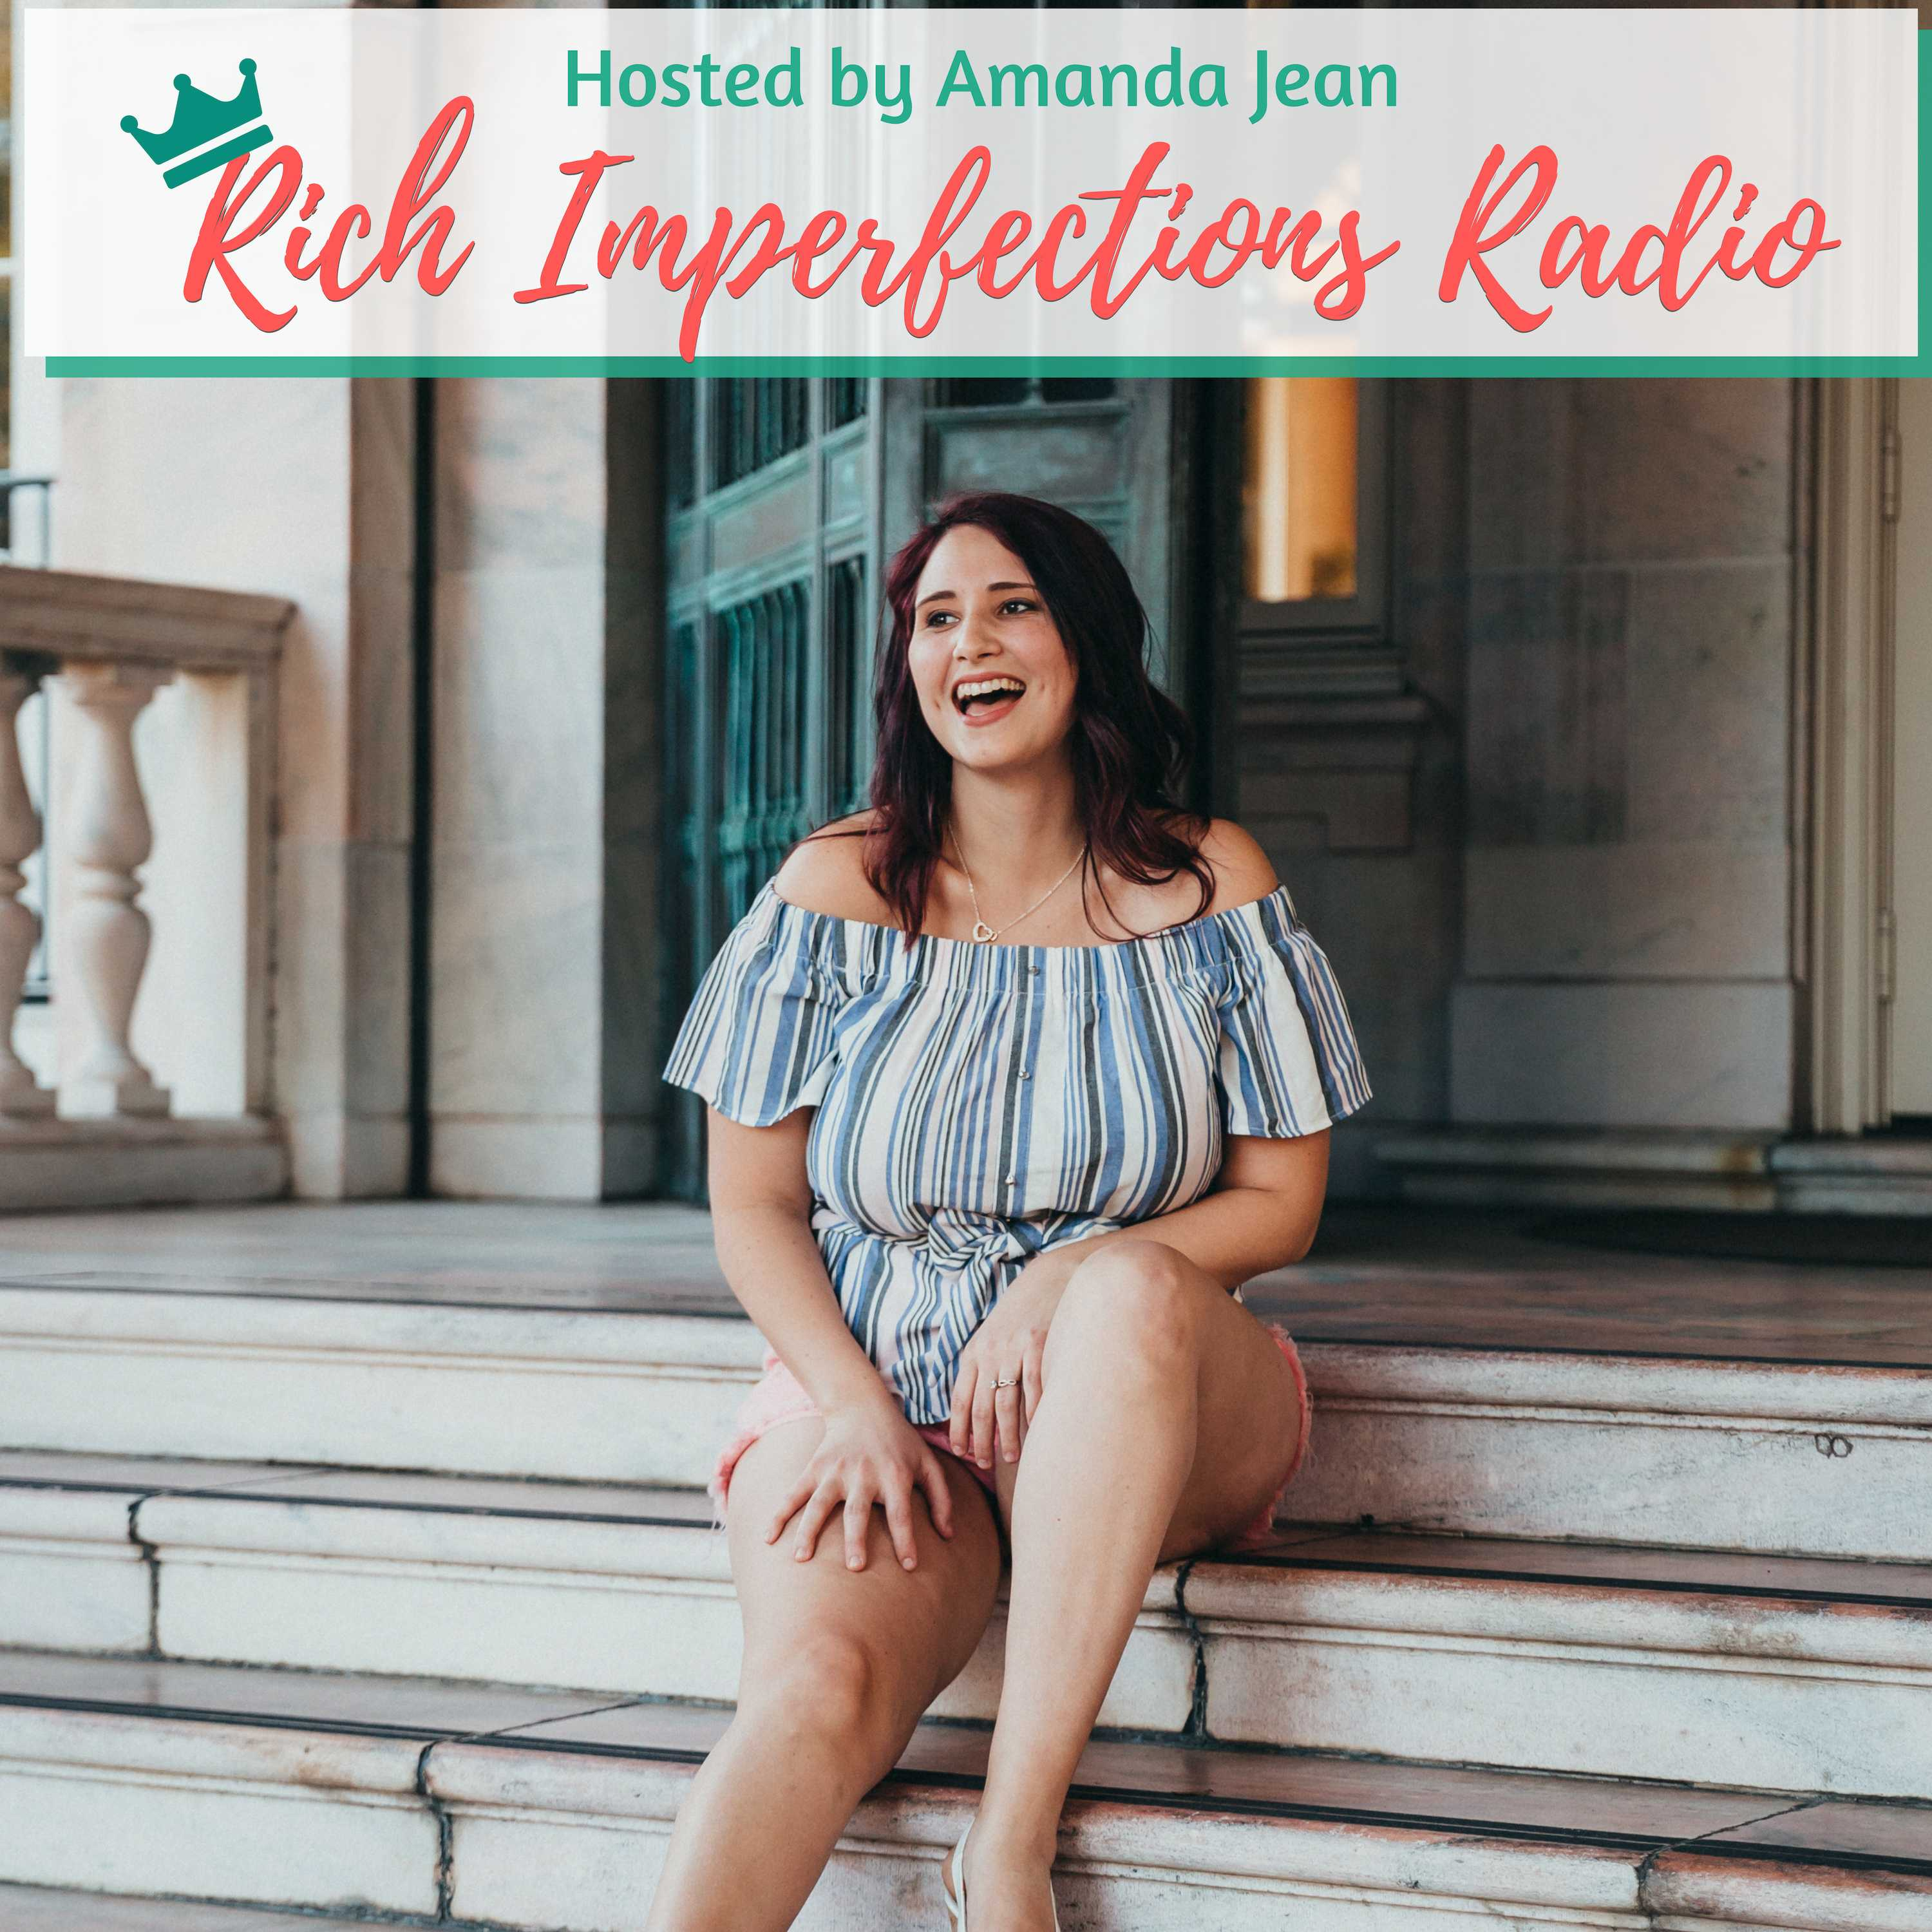 Rich Imperfections Radio